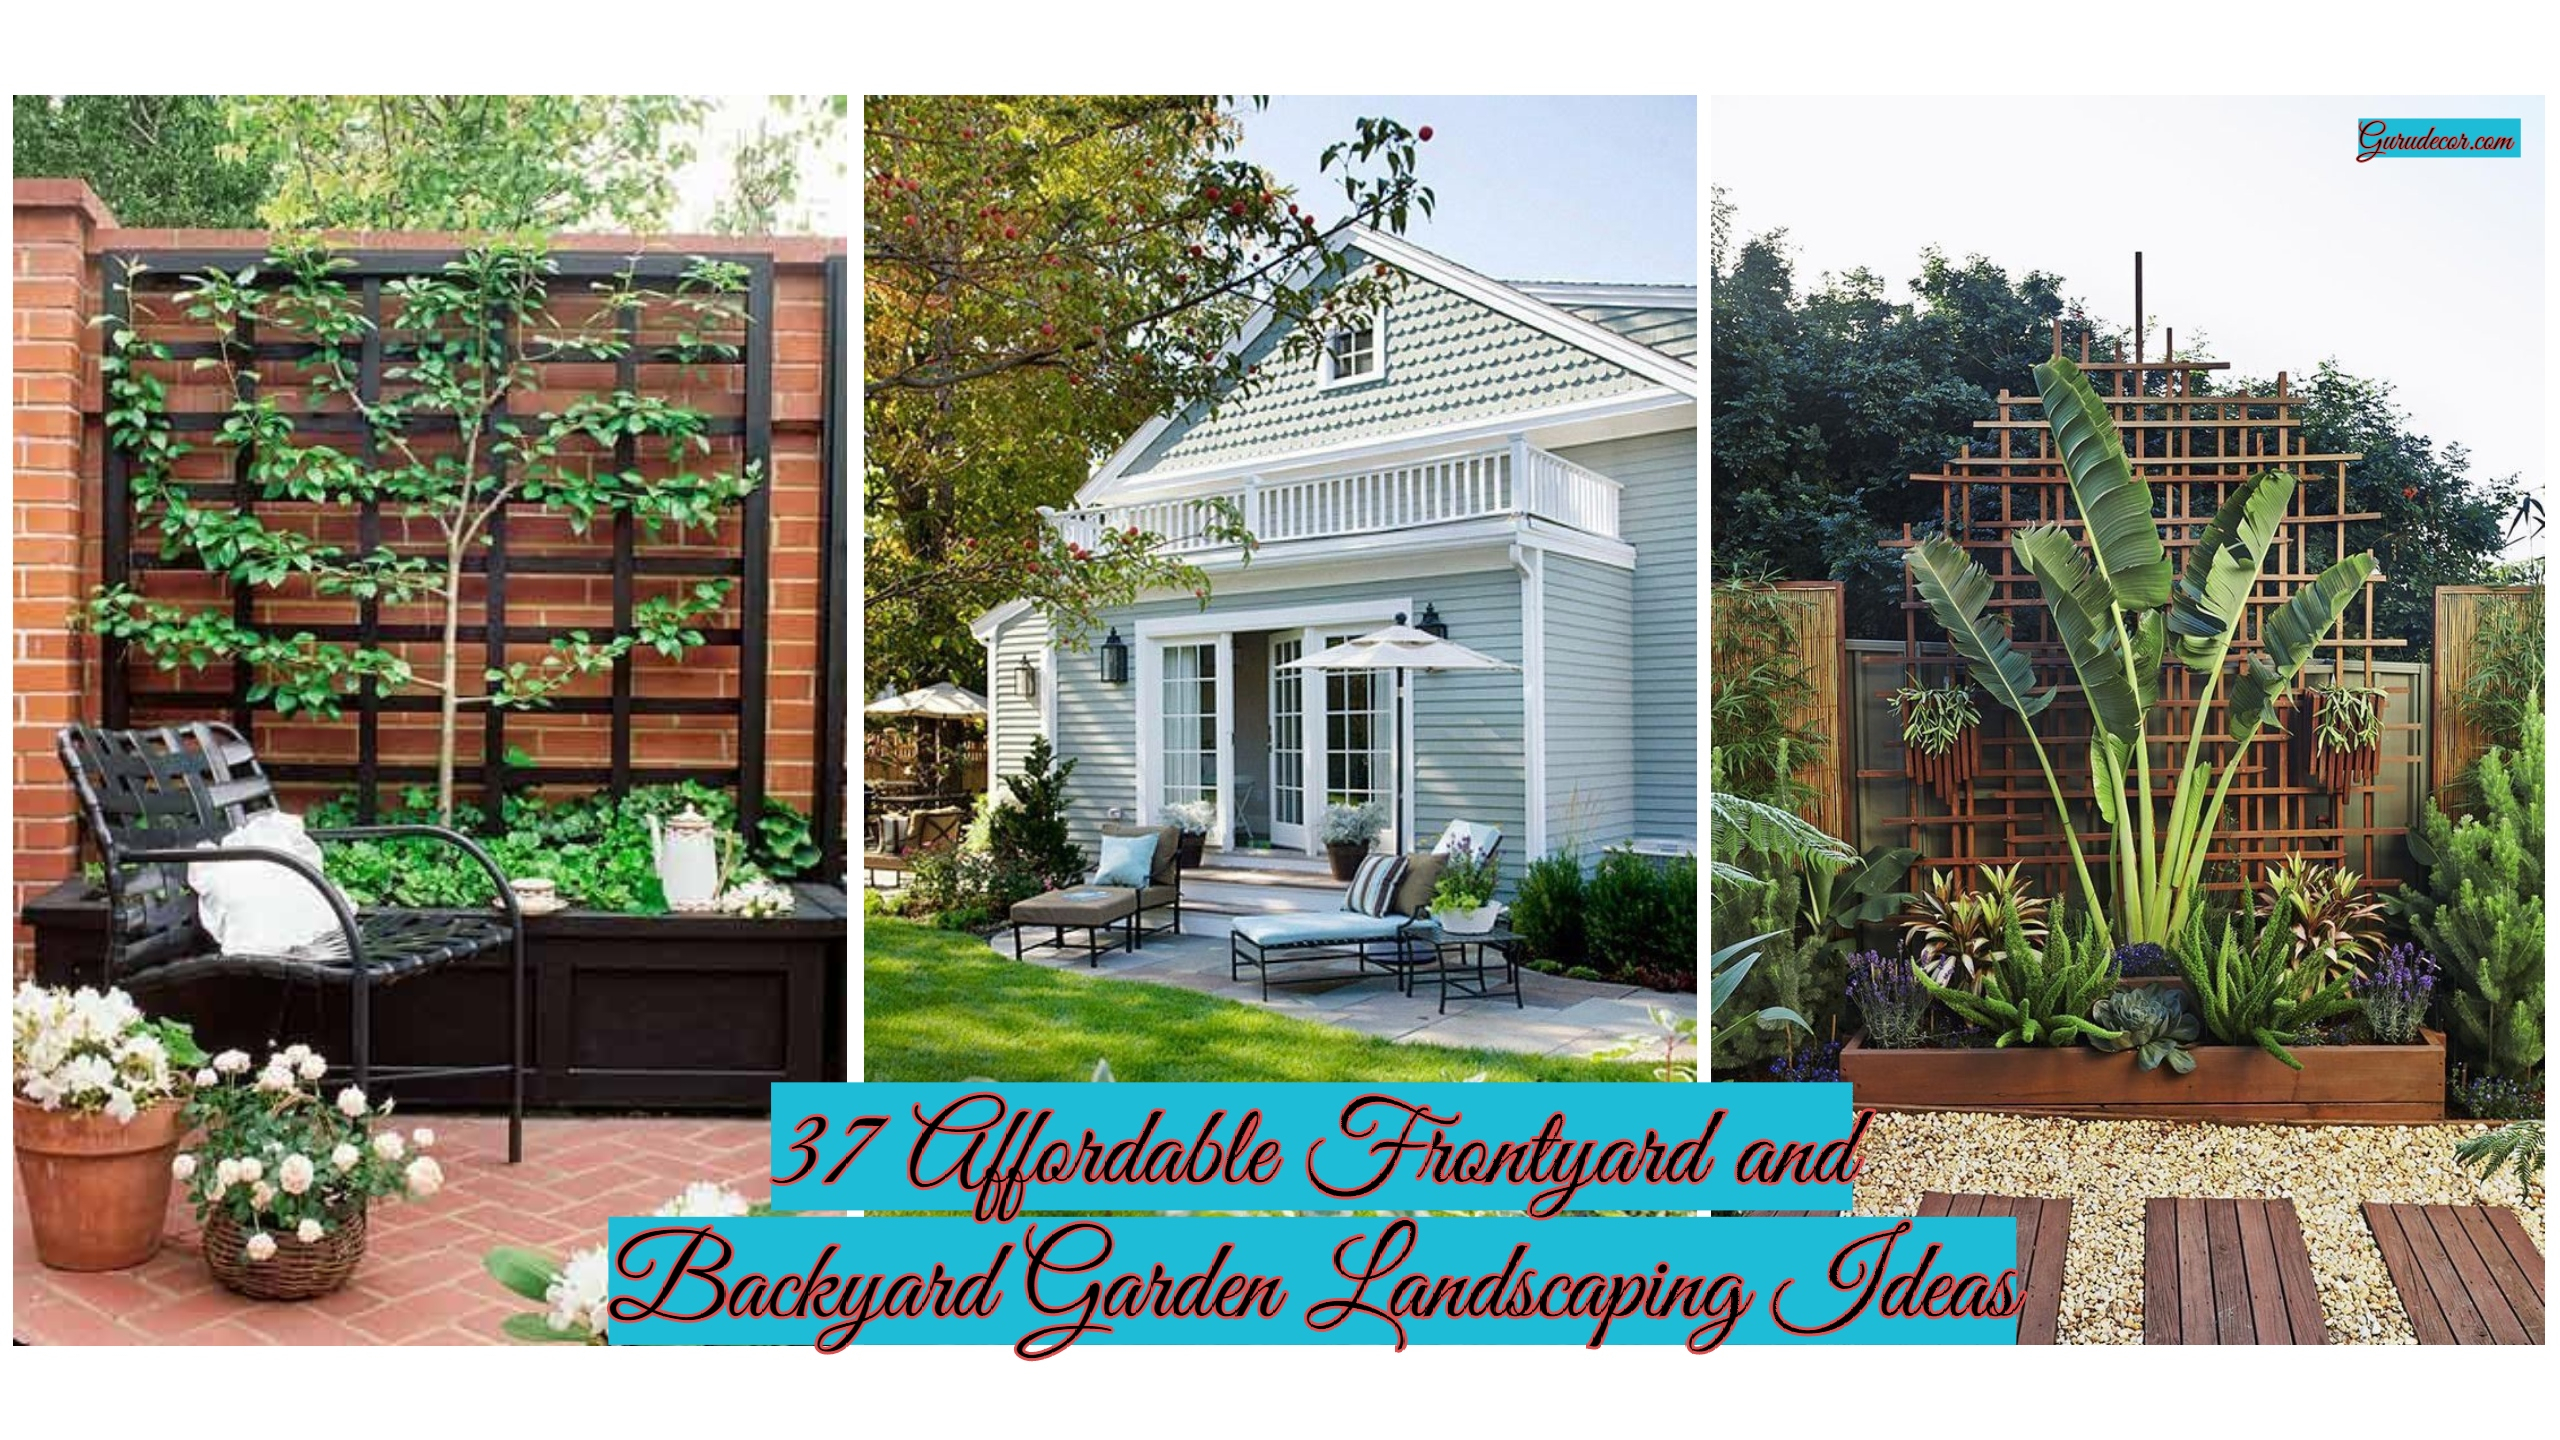 37 Affordable Frontyard And Backyard Garden Landscaping Ideas for 10 Clever Initiatives of How to Makeover Backyard Garden Designs And Ideas